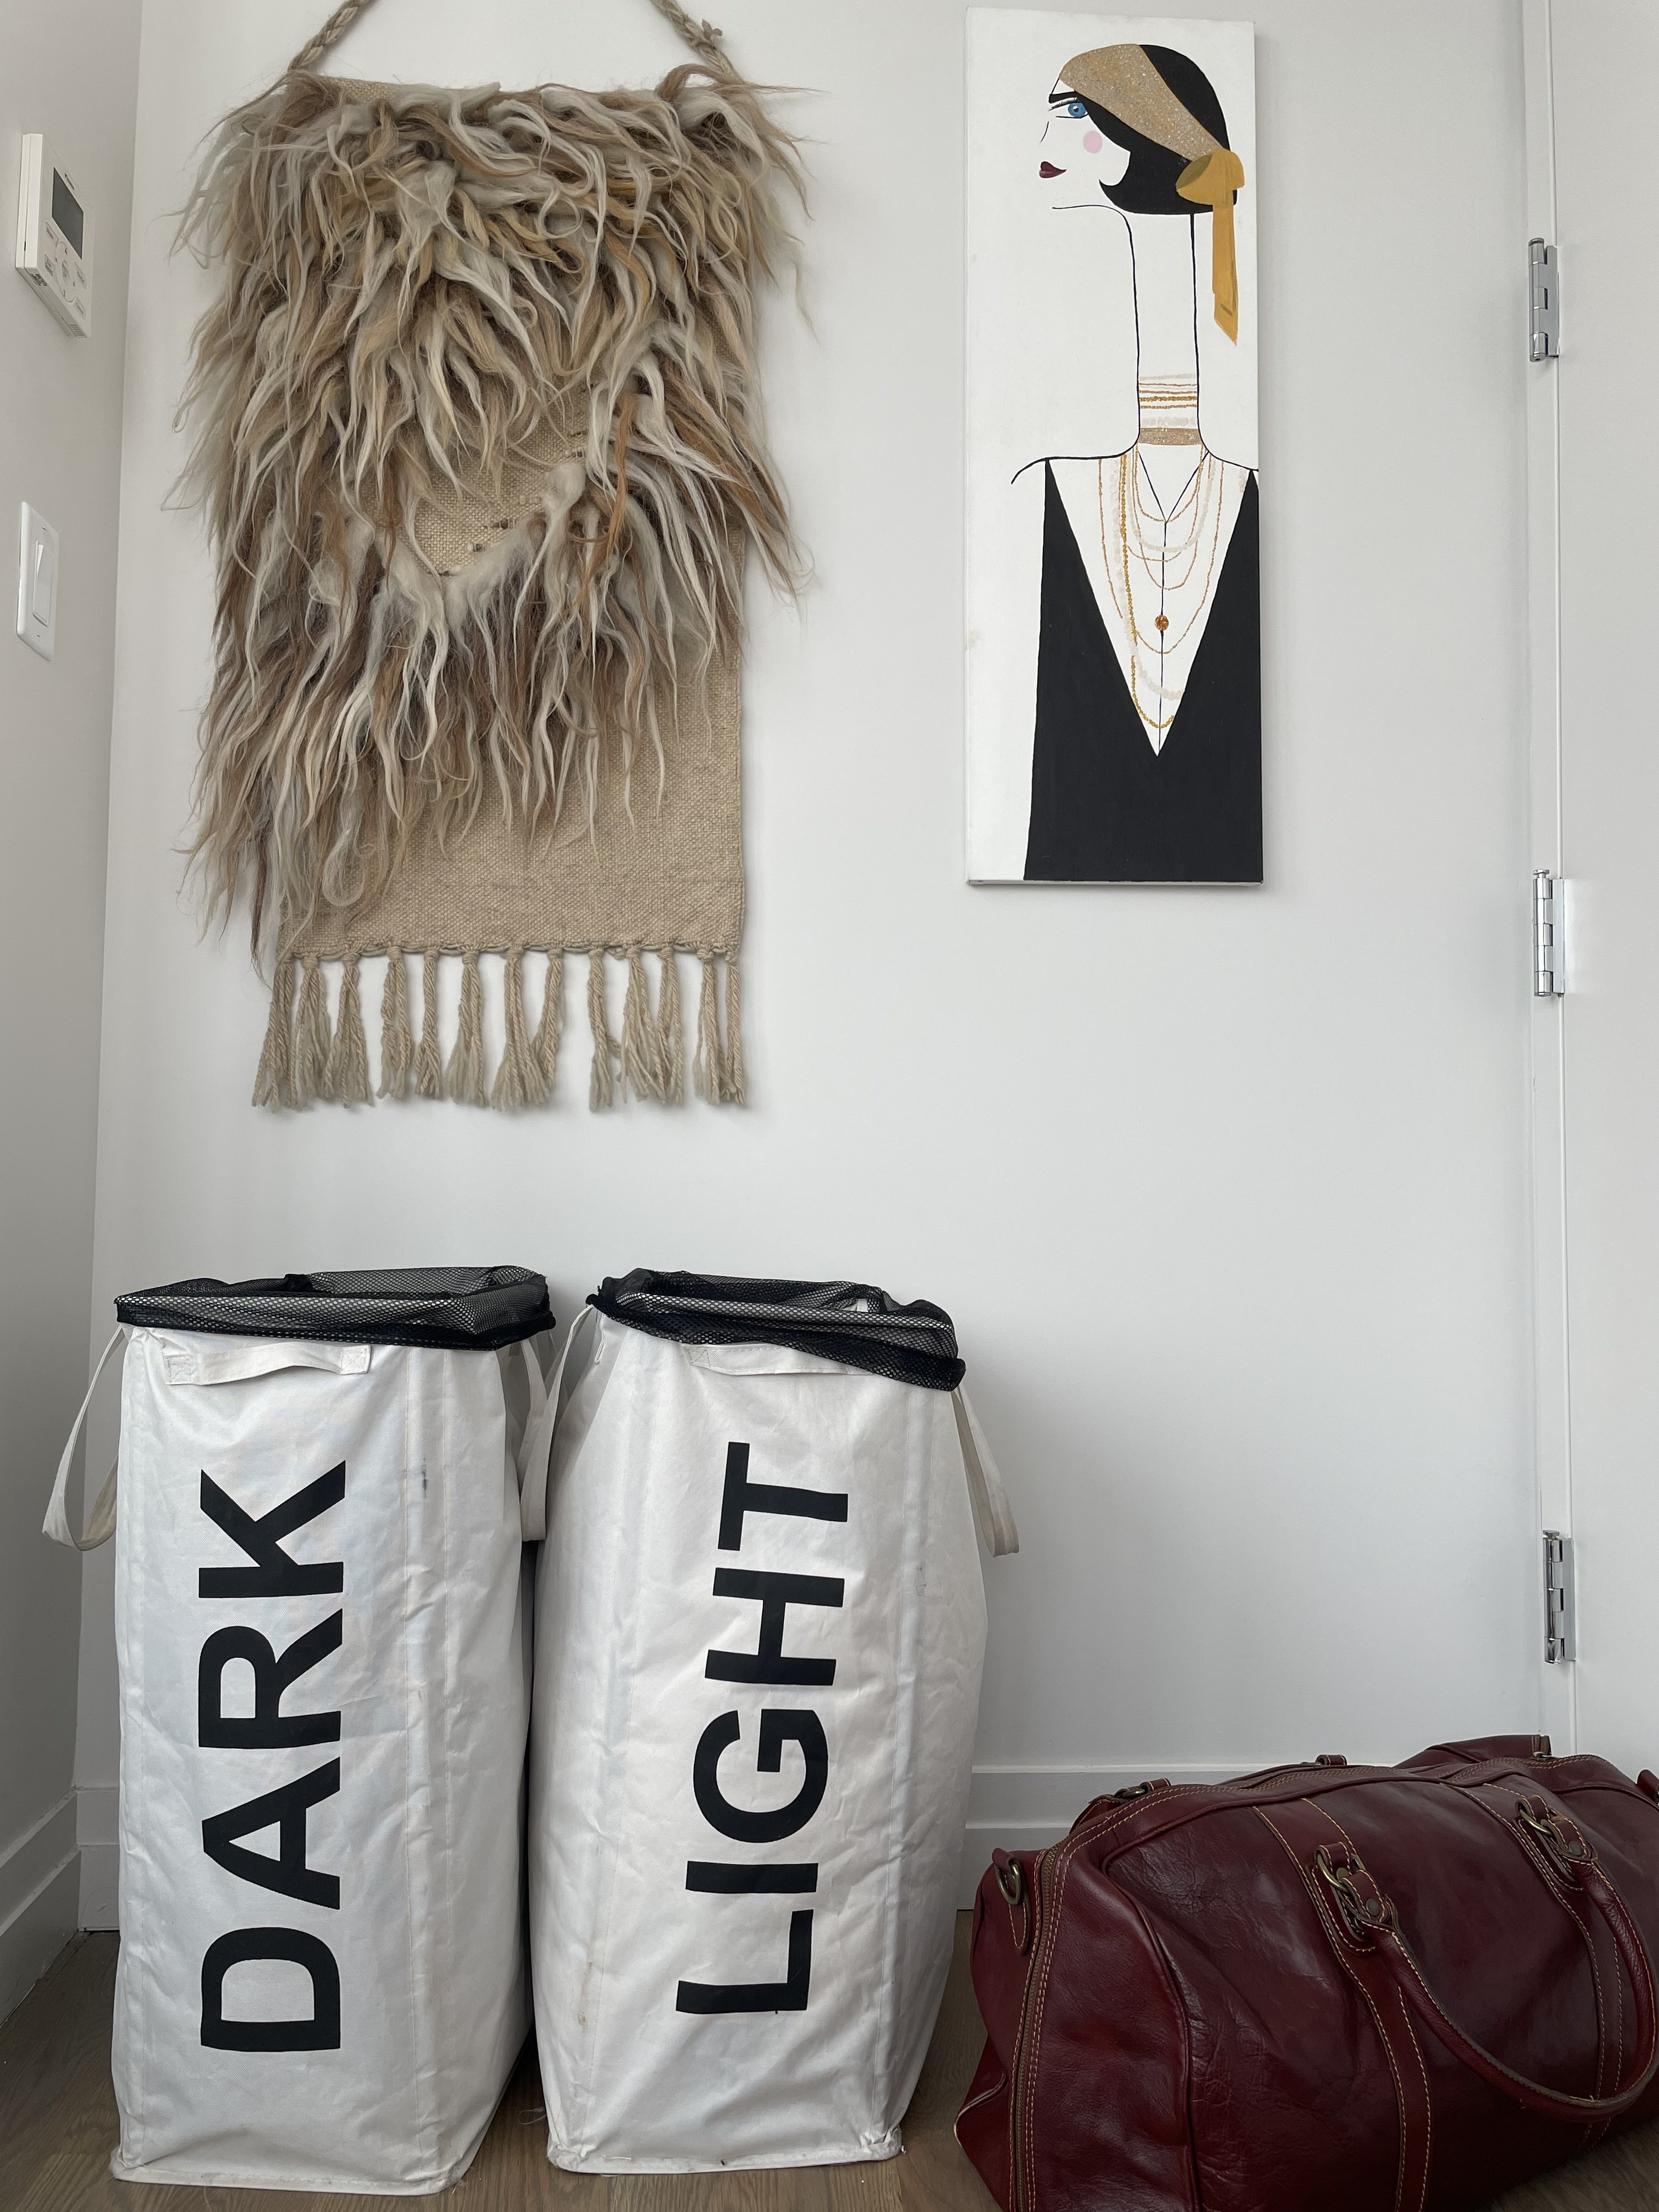 """Two cloth laundry hampers with handles and mesh bags inside. One says """"Dark"""" and the other """"Light"""""""